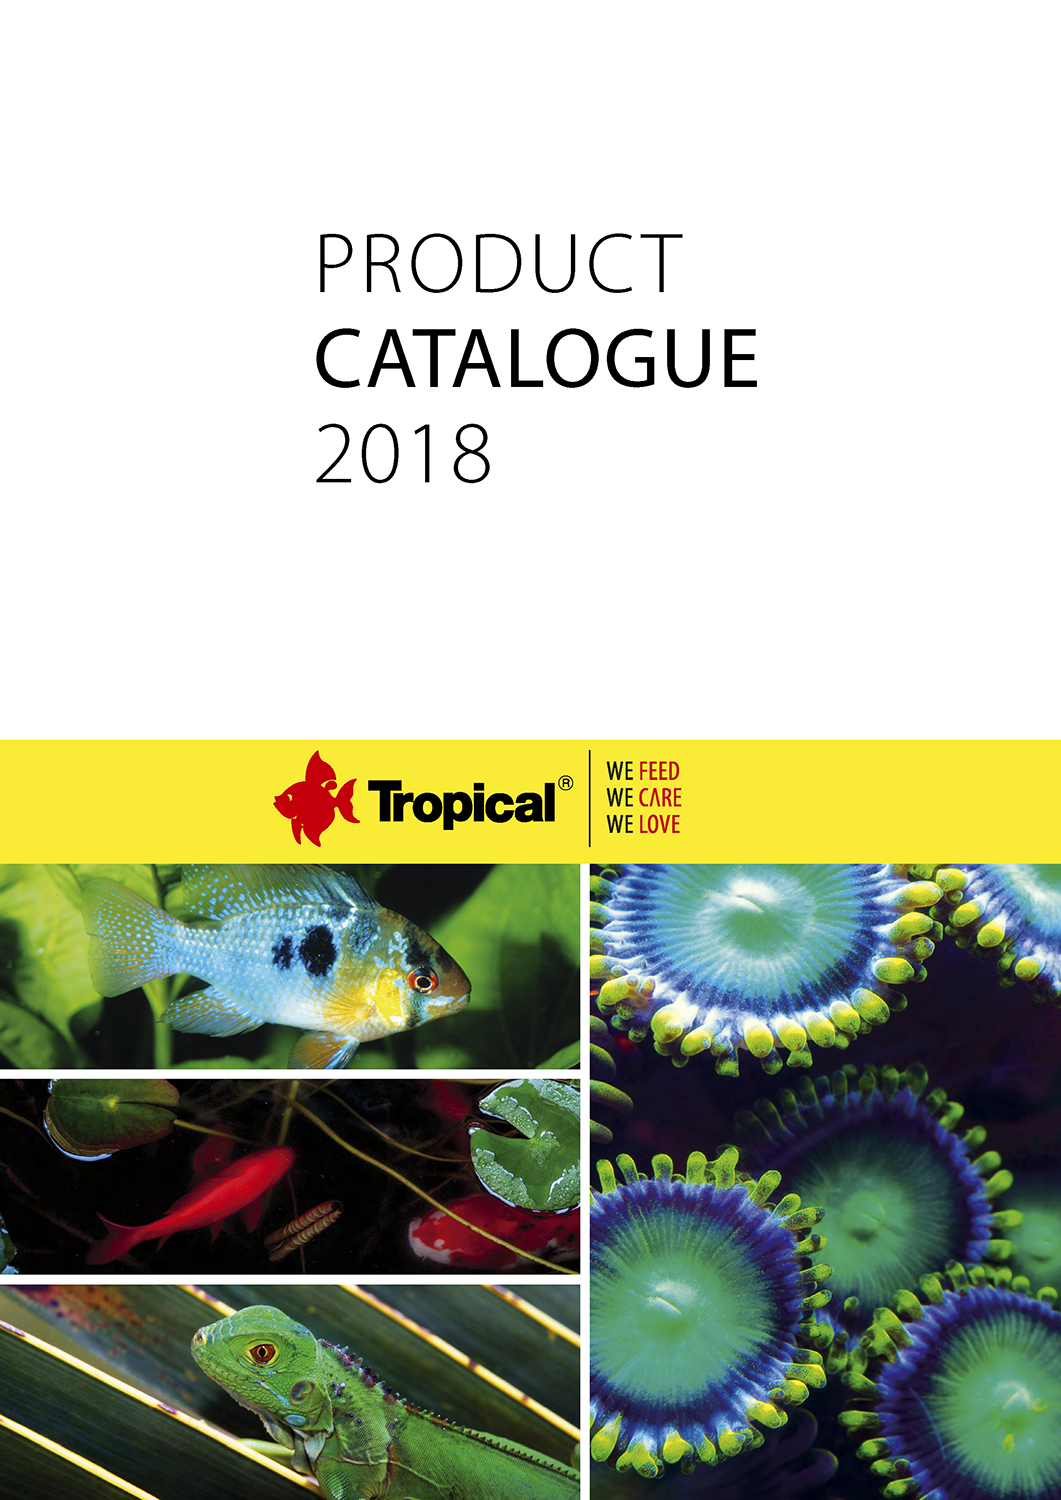 TROPICAL - Product catalogue 2018